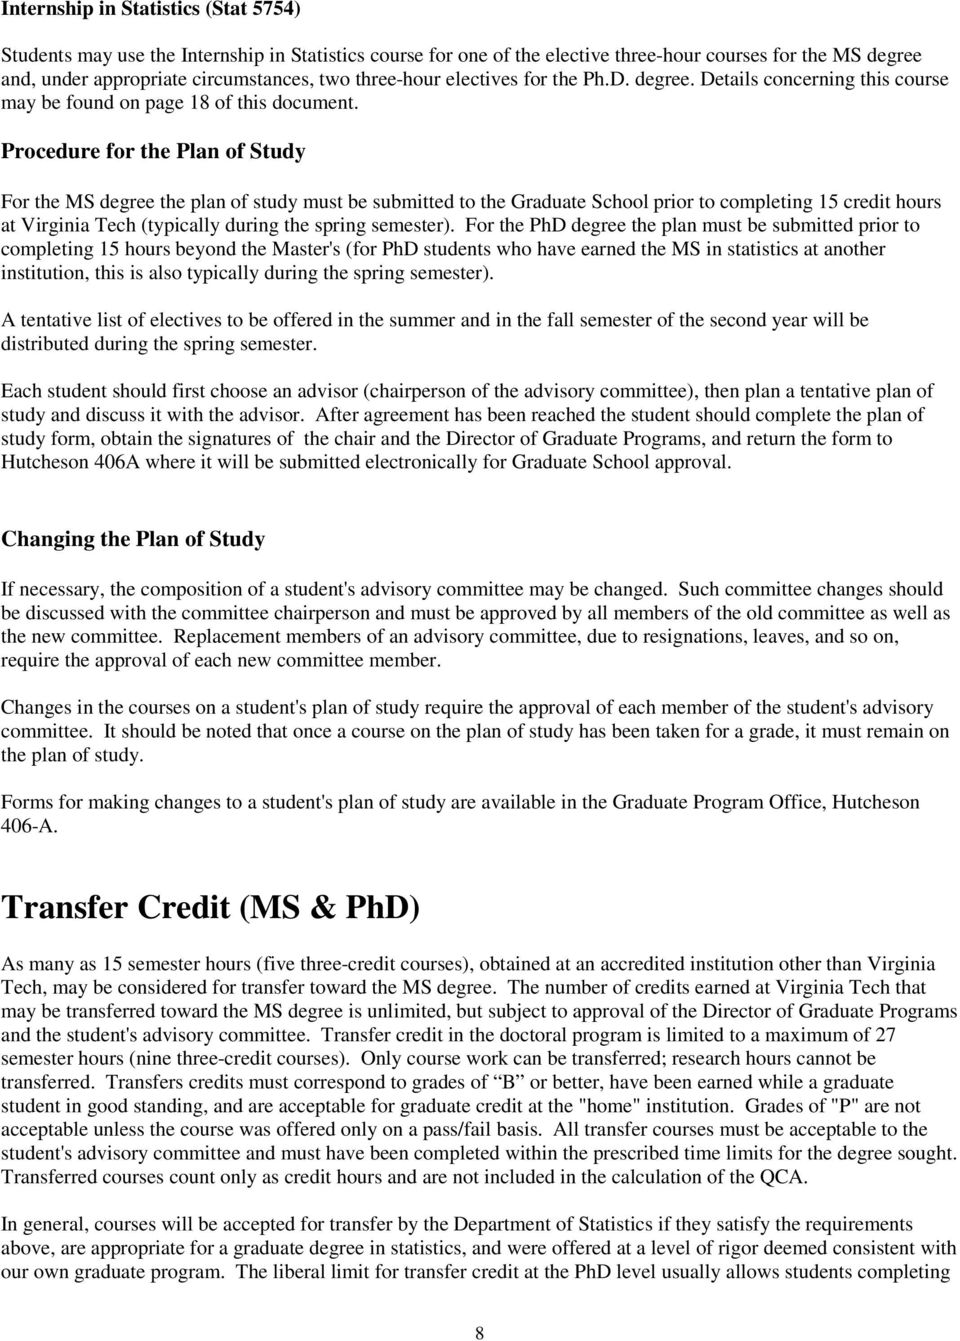 Procedure for the Plan of Study For the MS degree the plan of study must be submitted to the Graduate School prior to completing 15 credit hours at Virginia Tech (typically during the spring